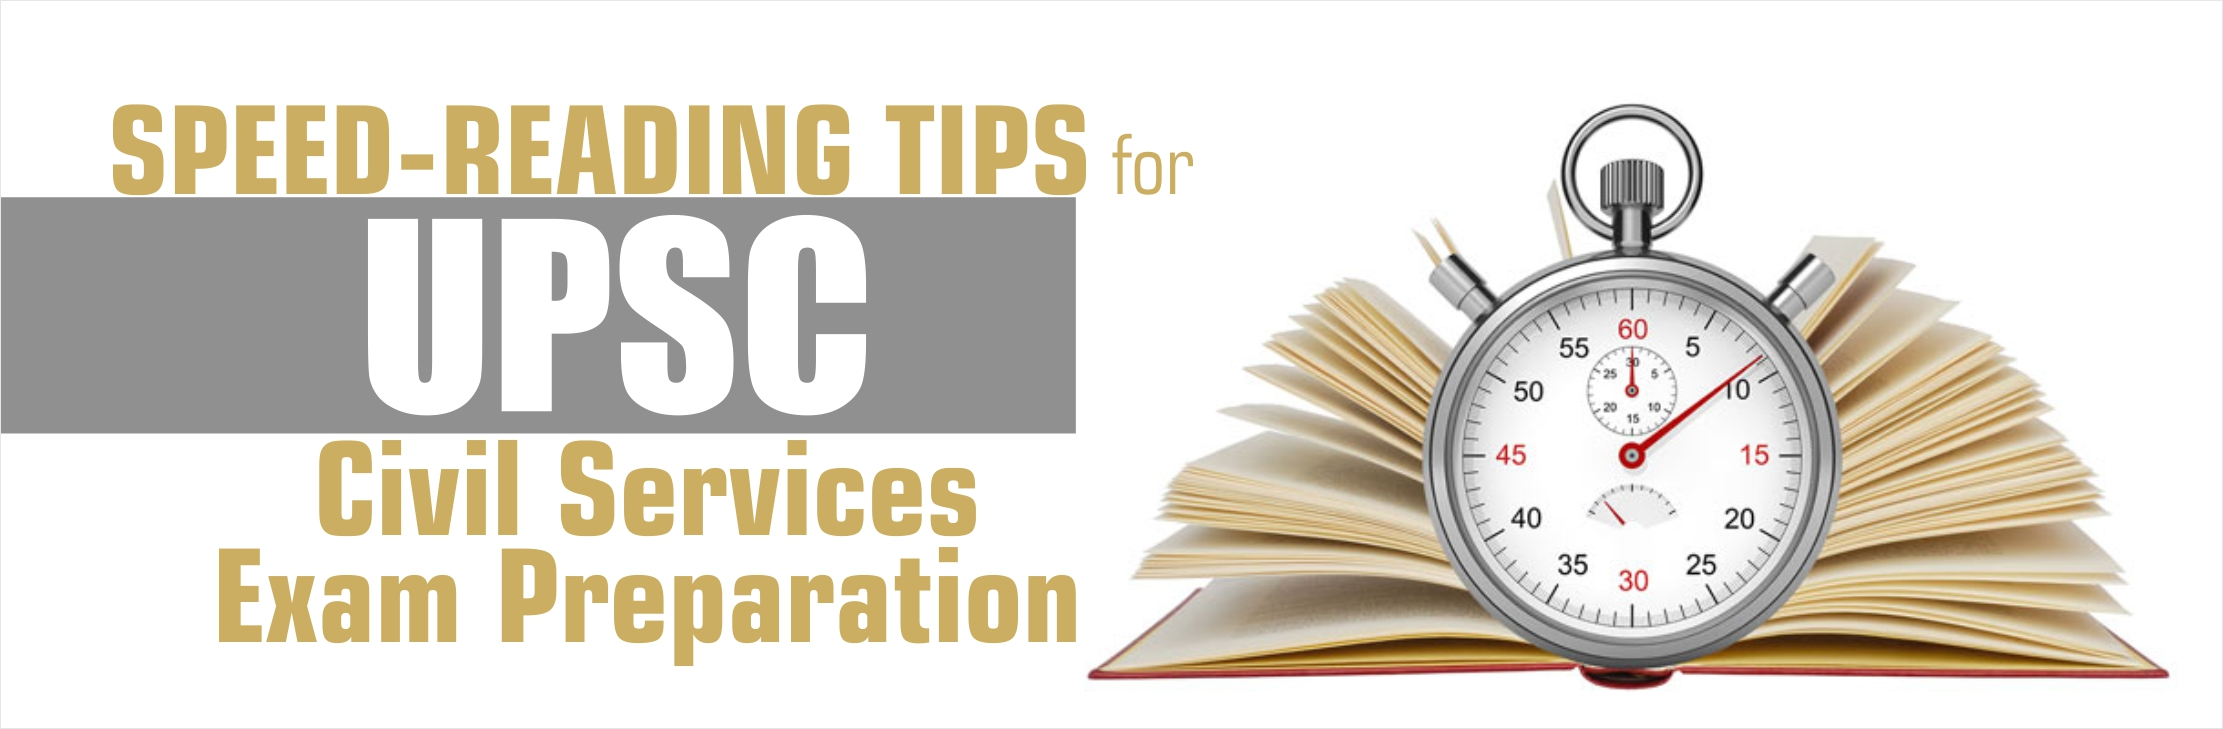 Speed-Reading Tips for UPSC Civil Services Exam Preparation